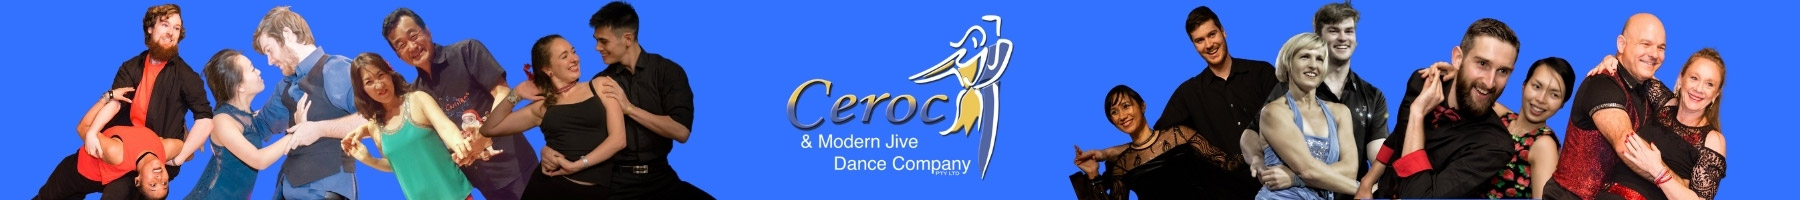 Ceroc and Modern Jive Dance Company